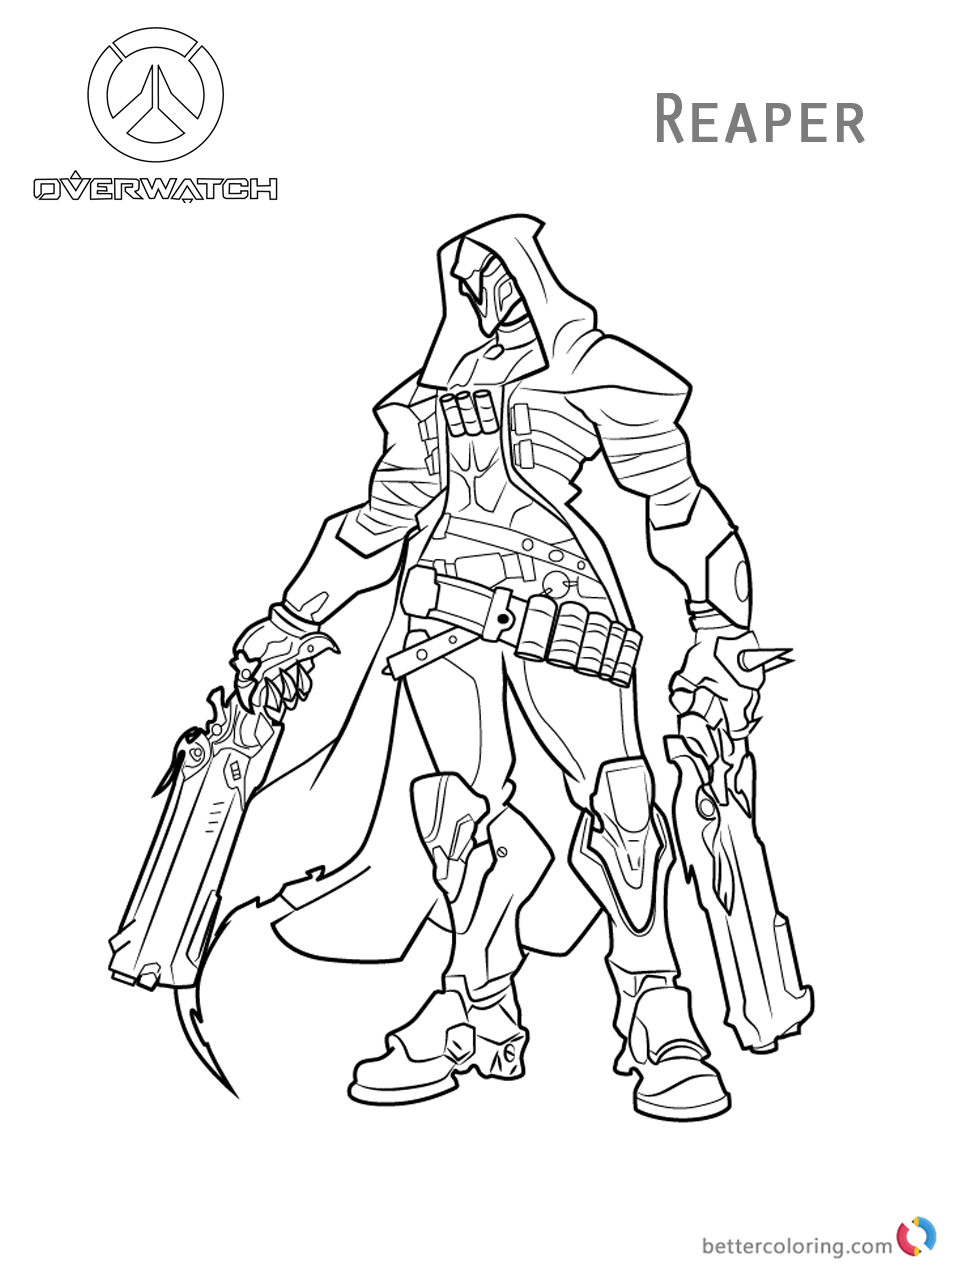 Reaper From Overwatch Coloring Pages Free Printable